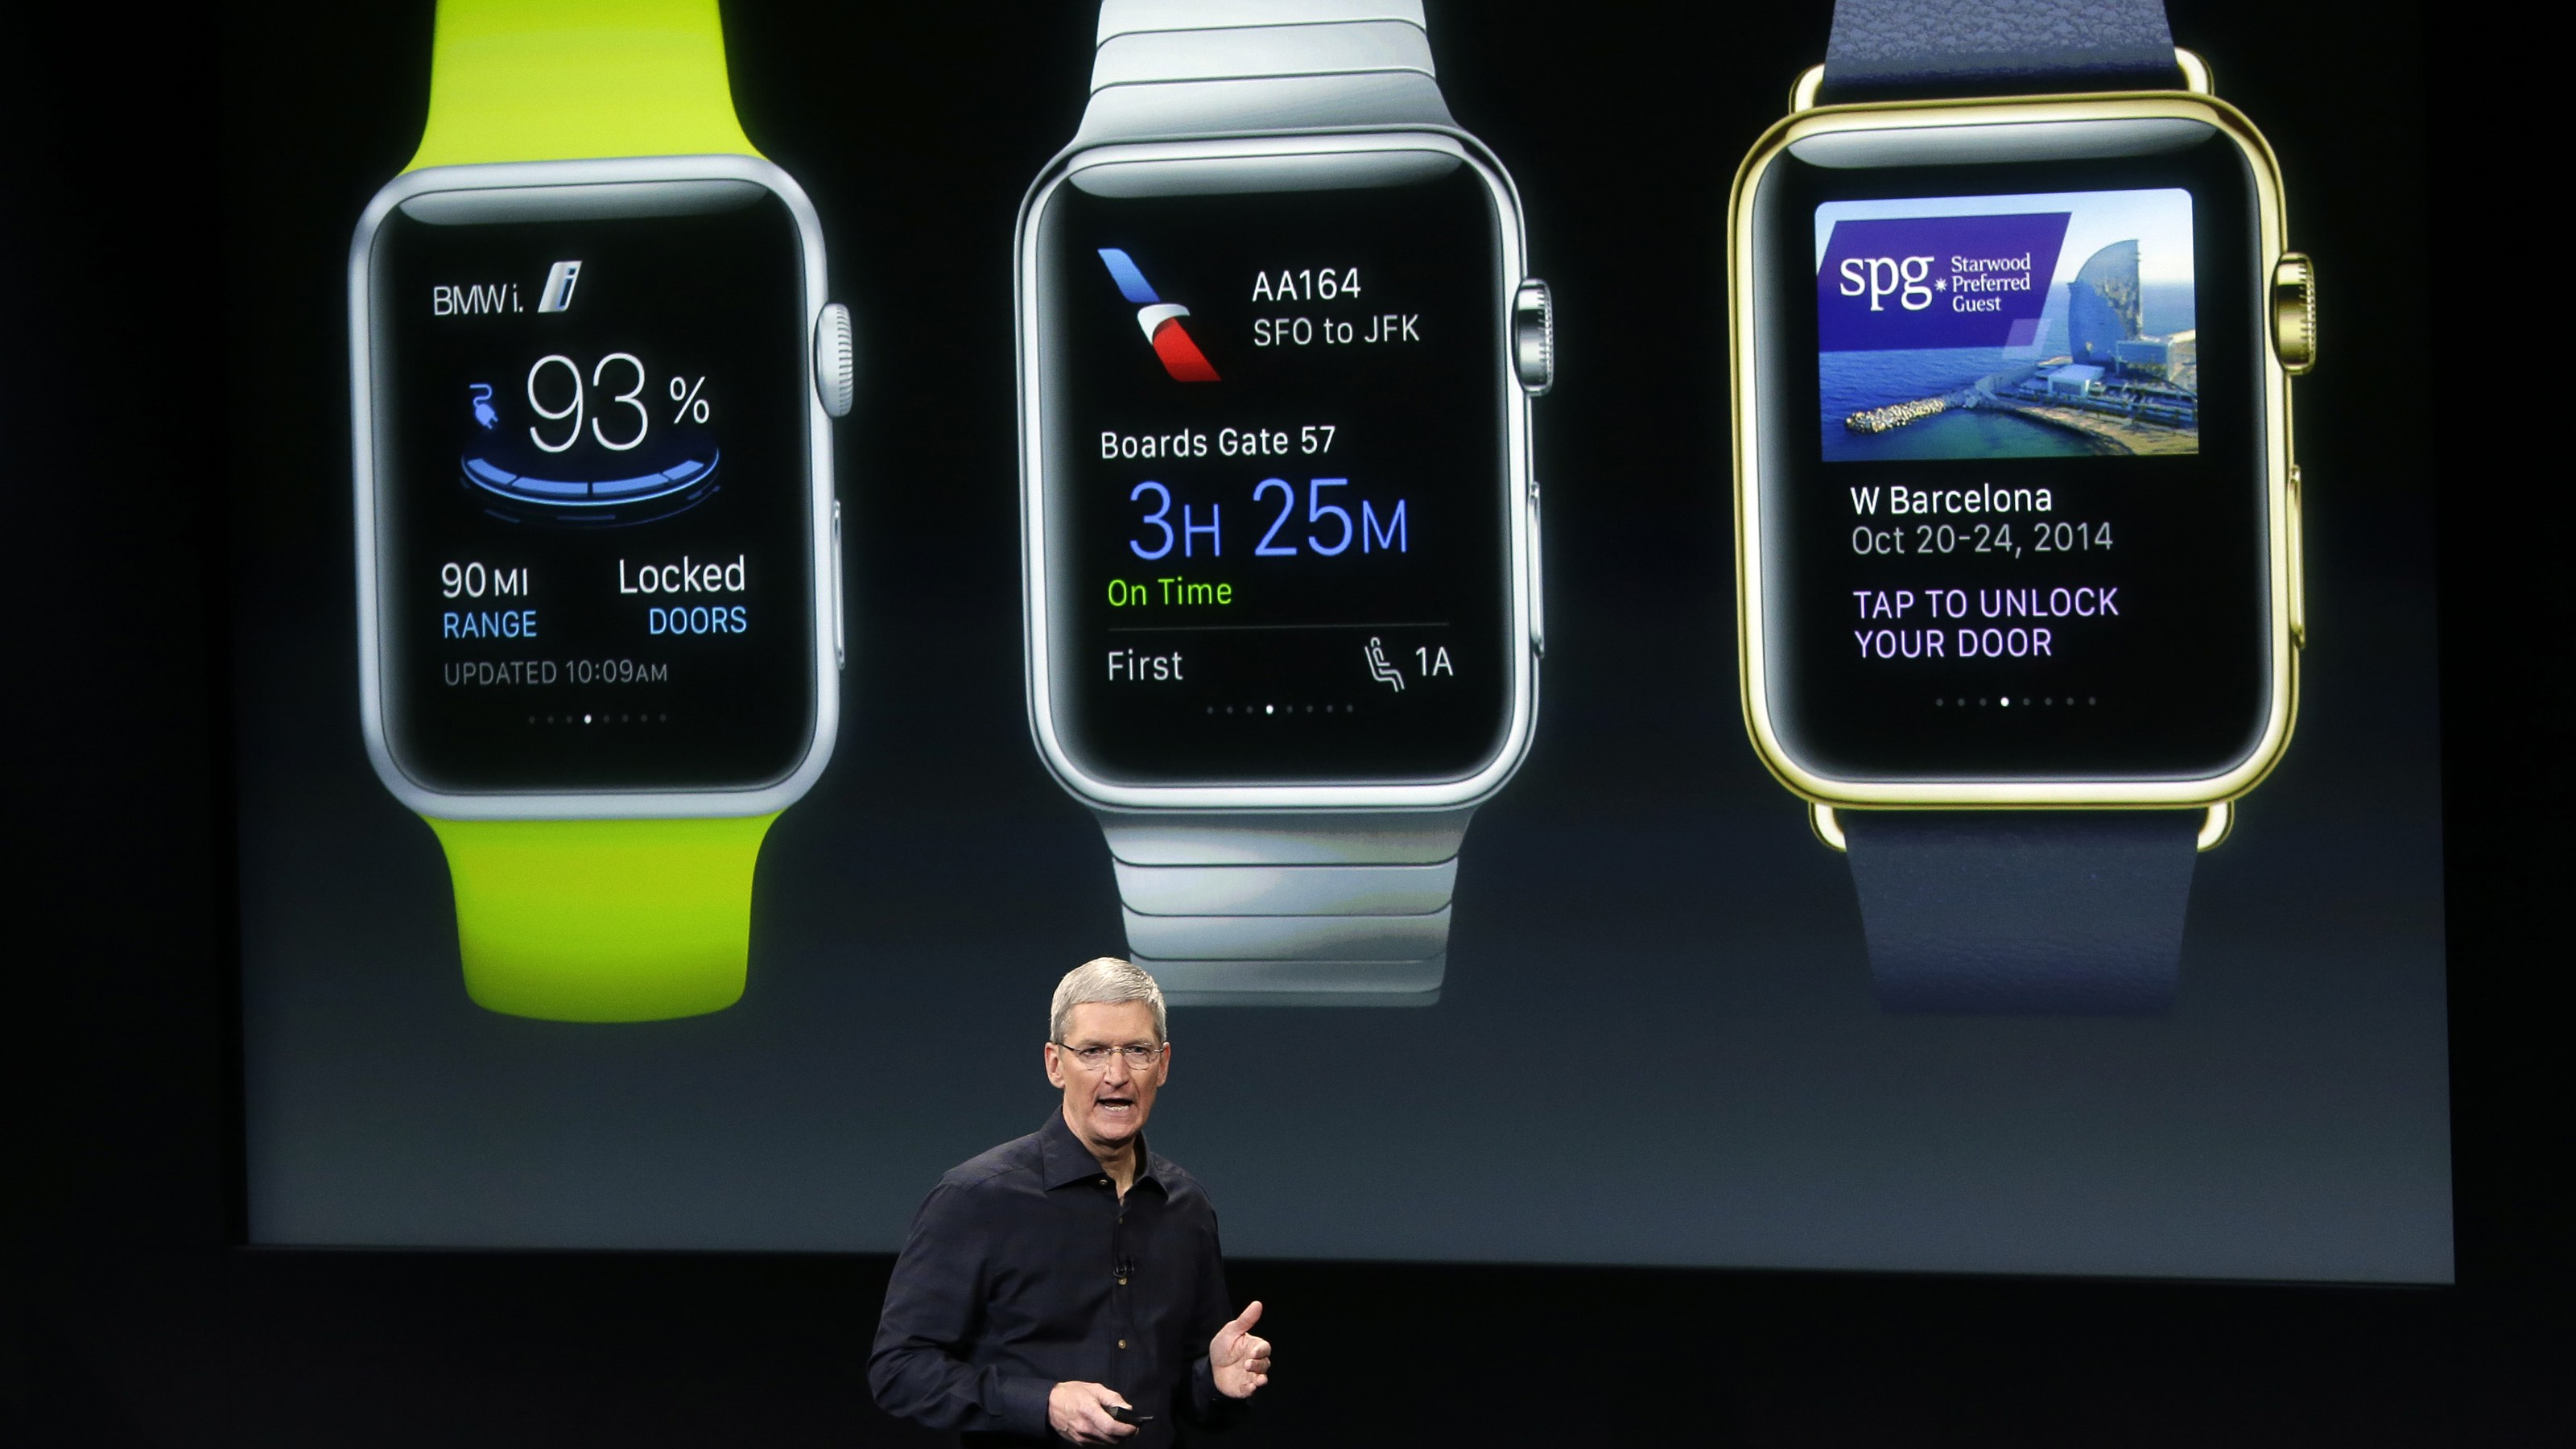 Apple CEO Tim Cook discusses the new Apple Watch during an event at Apple headquarters on Thursday, Oct. 16, 2014 in Cupertino, Calif. (AP Photo/Marcio Jose Sanchez)